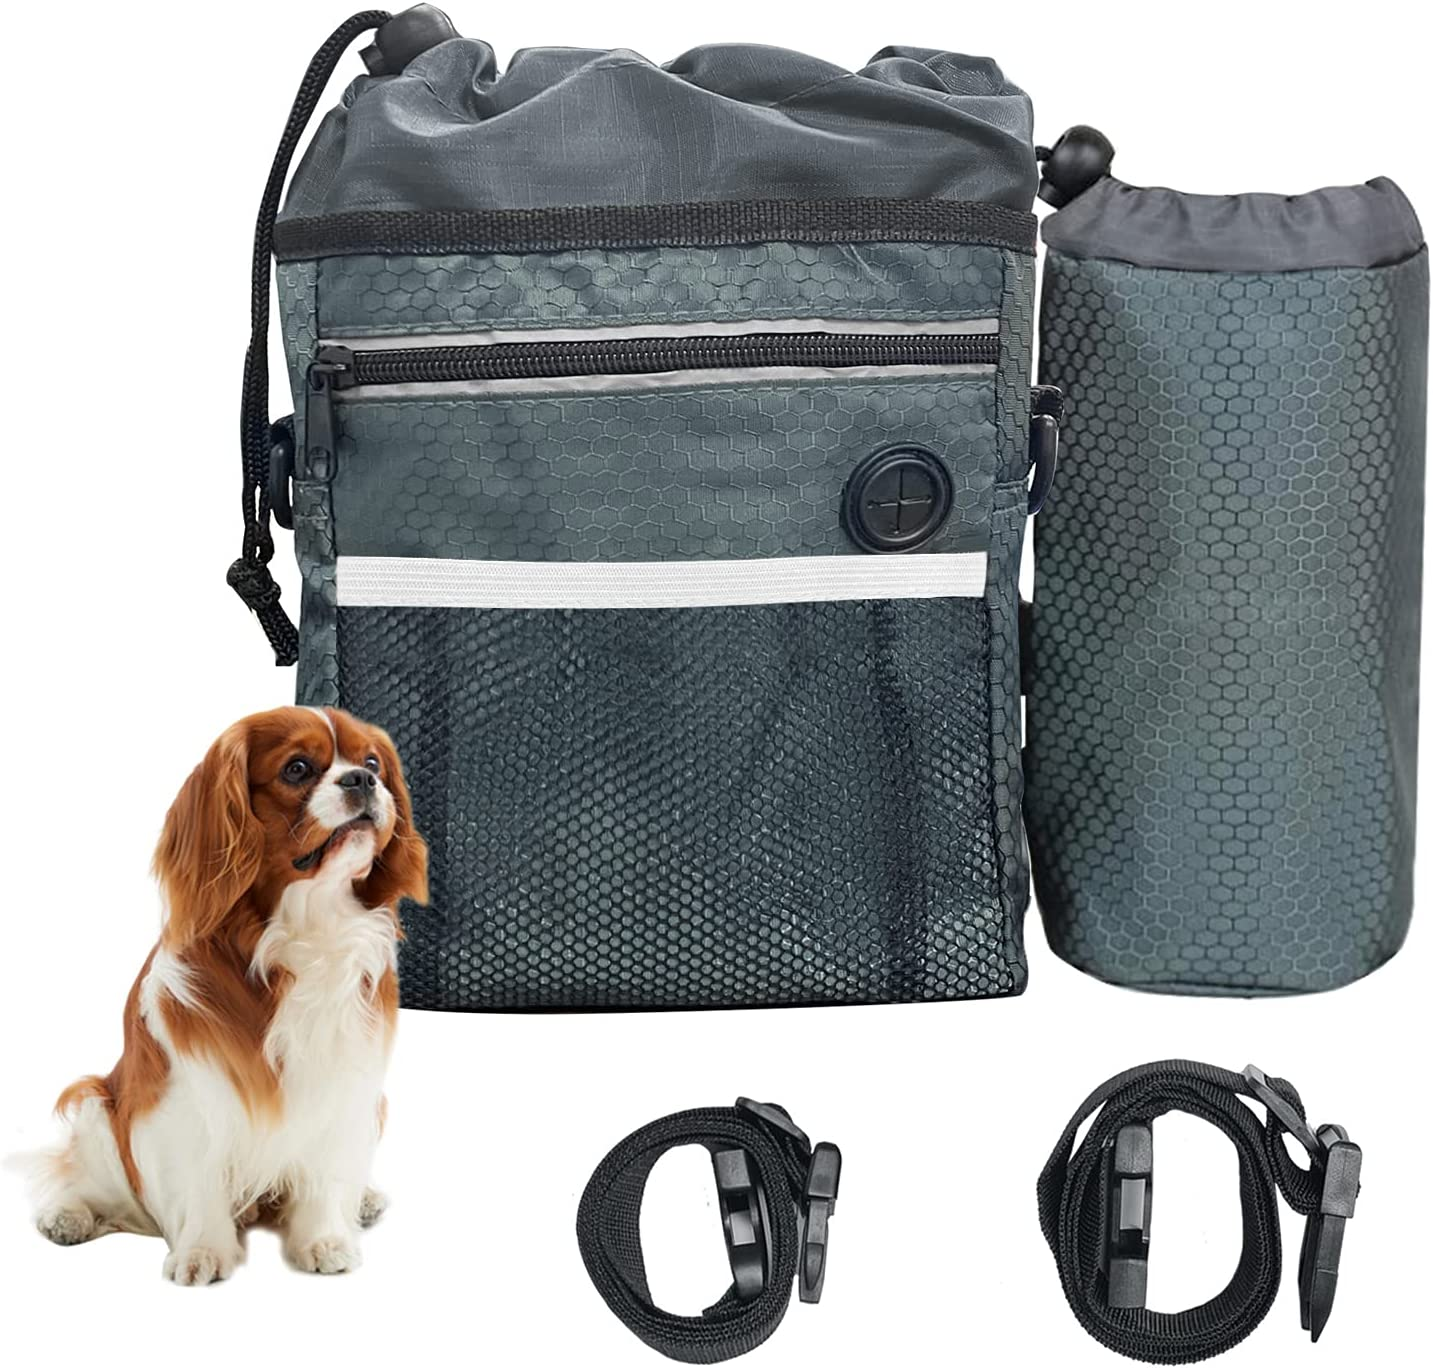 YUKOOL Dog Treat Brand new Pouch Bag Adjustable Waistband B Surprise price with